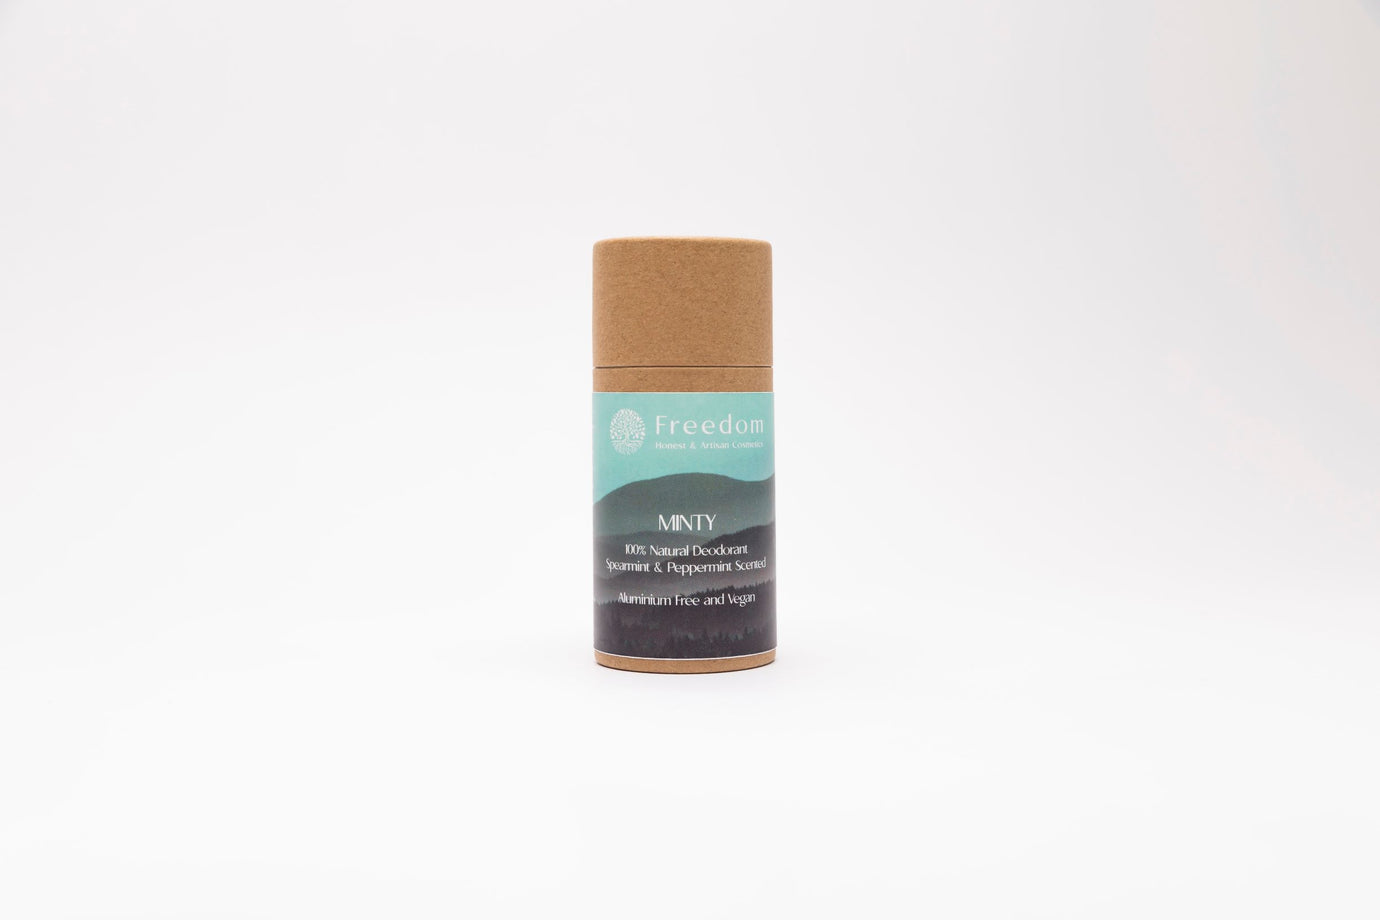 Minty Natural Vegan Deodorant - Spearmint and Peppermint Scented - 70g